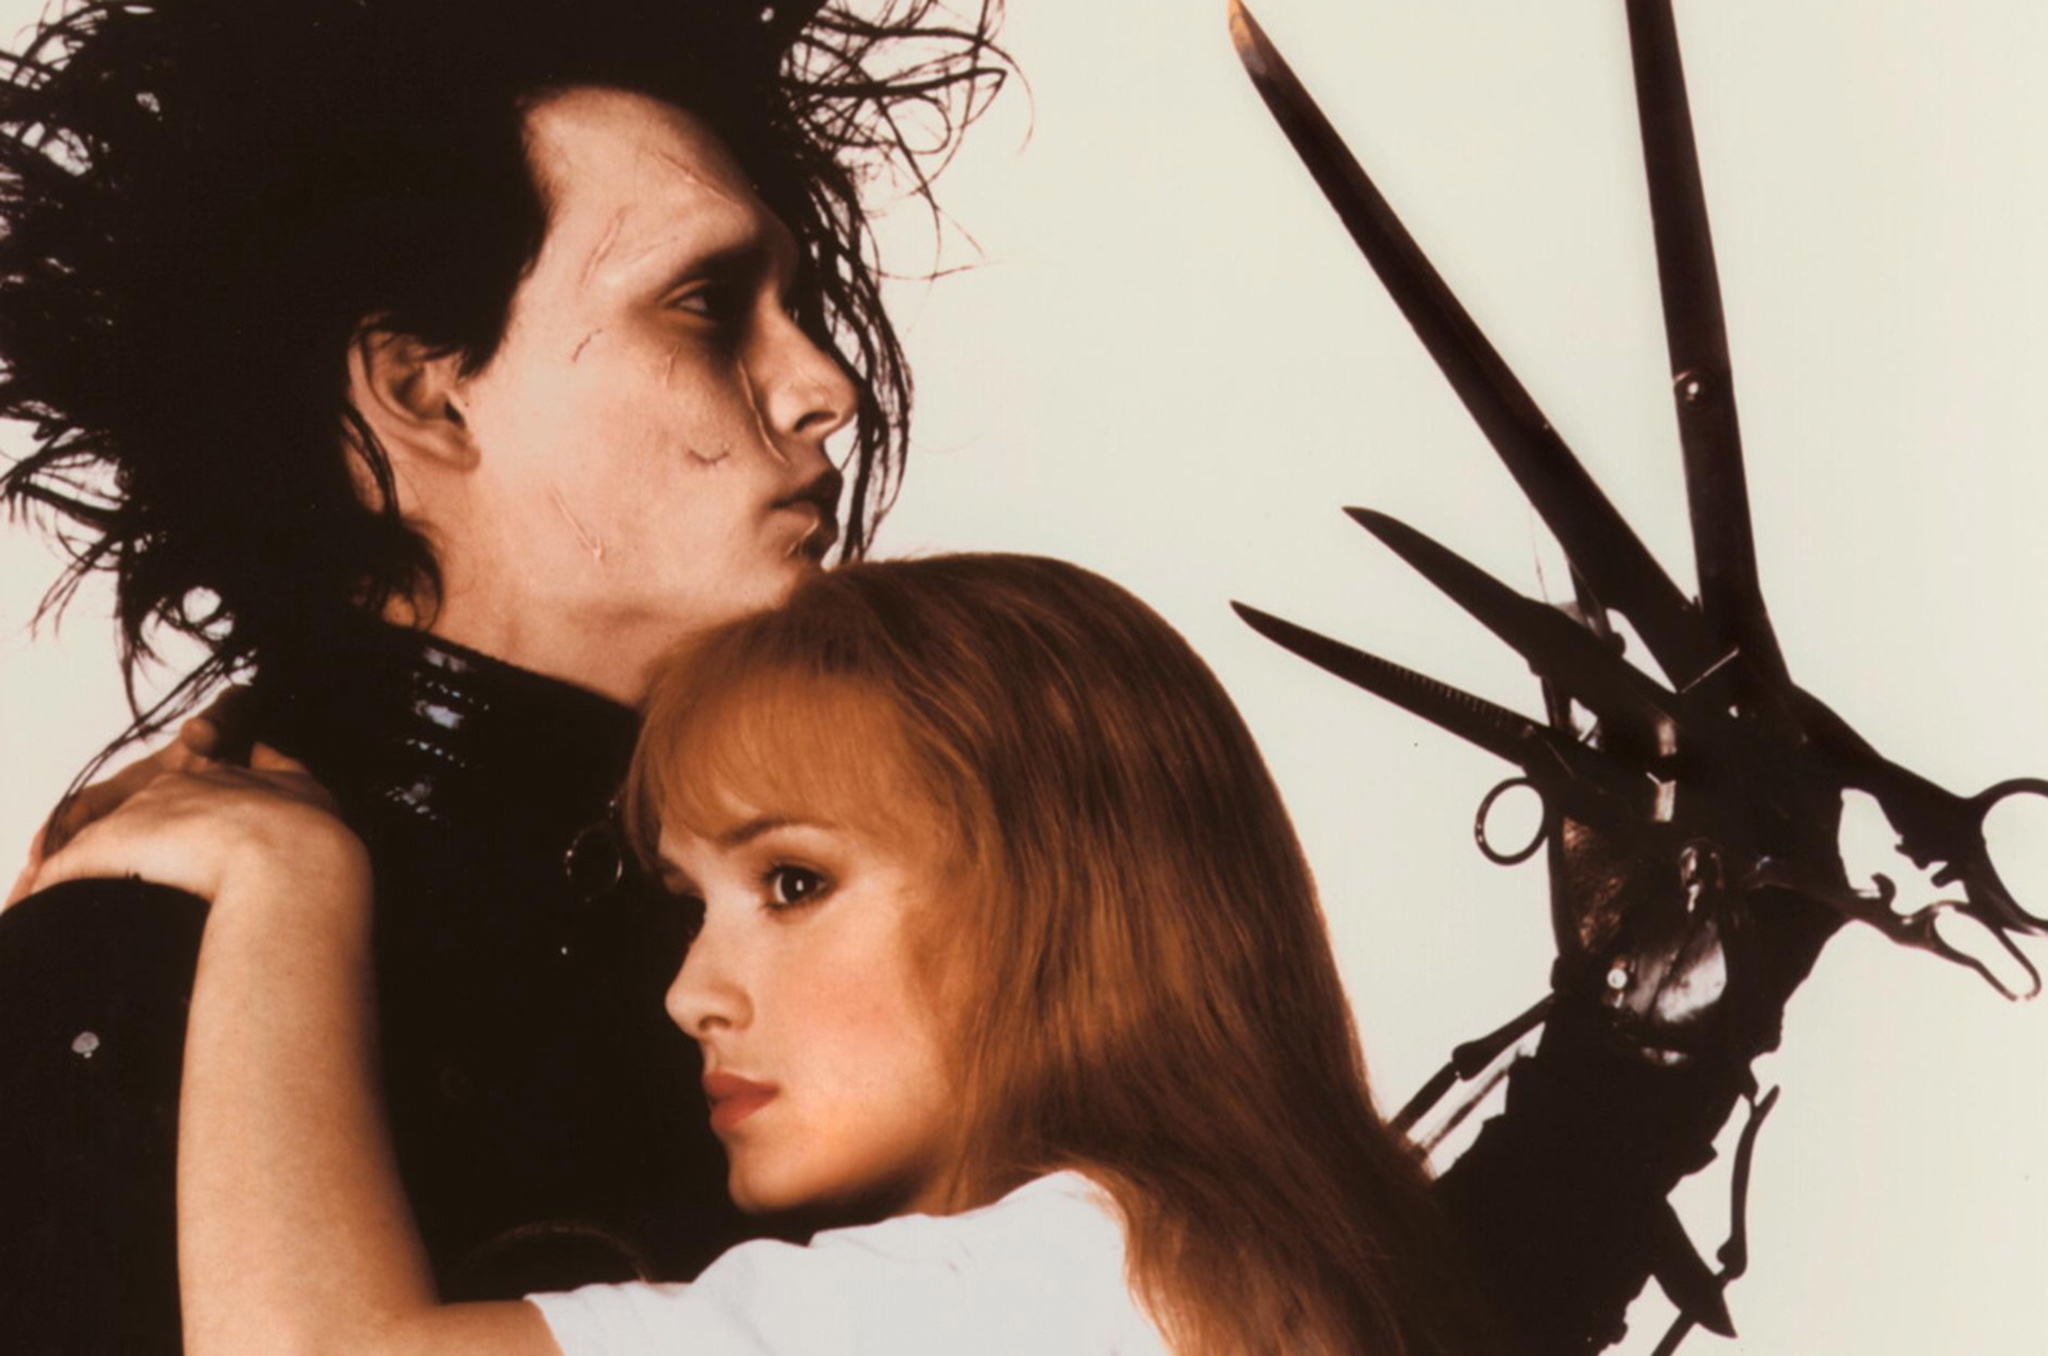 Romance movie: Edward Scissorhands